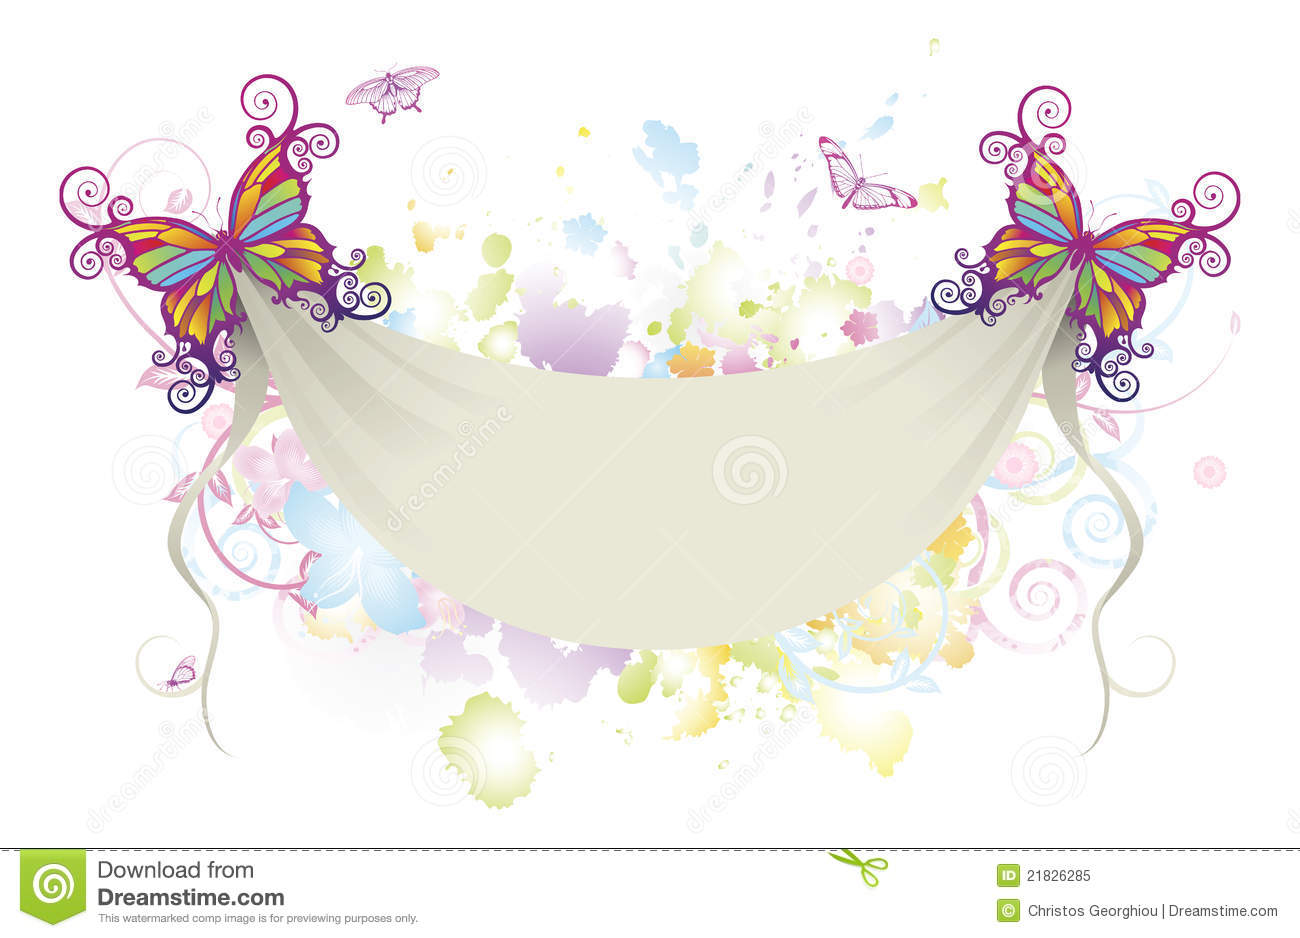 Abstract Floral Butterfly Banner Background Royalty Free Stock Photo ...